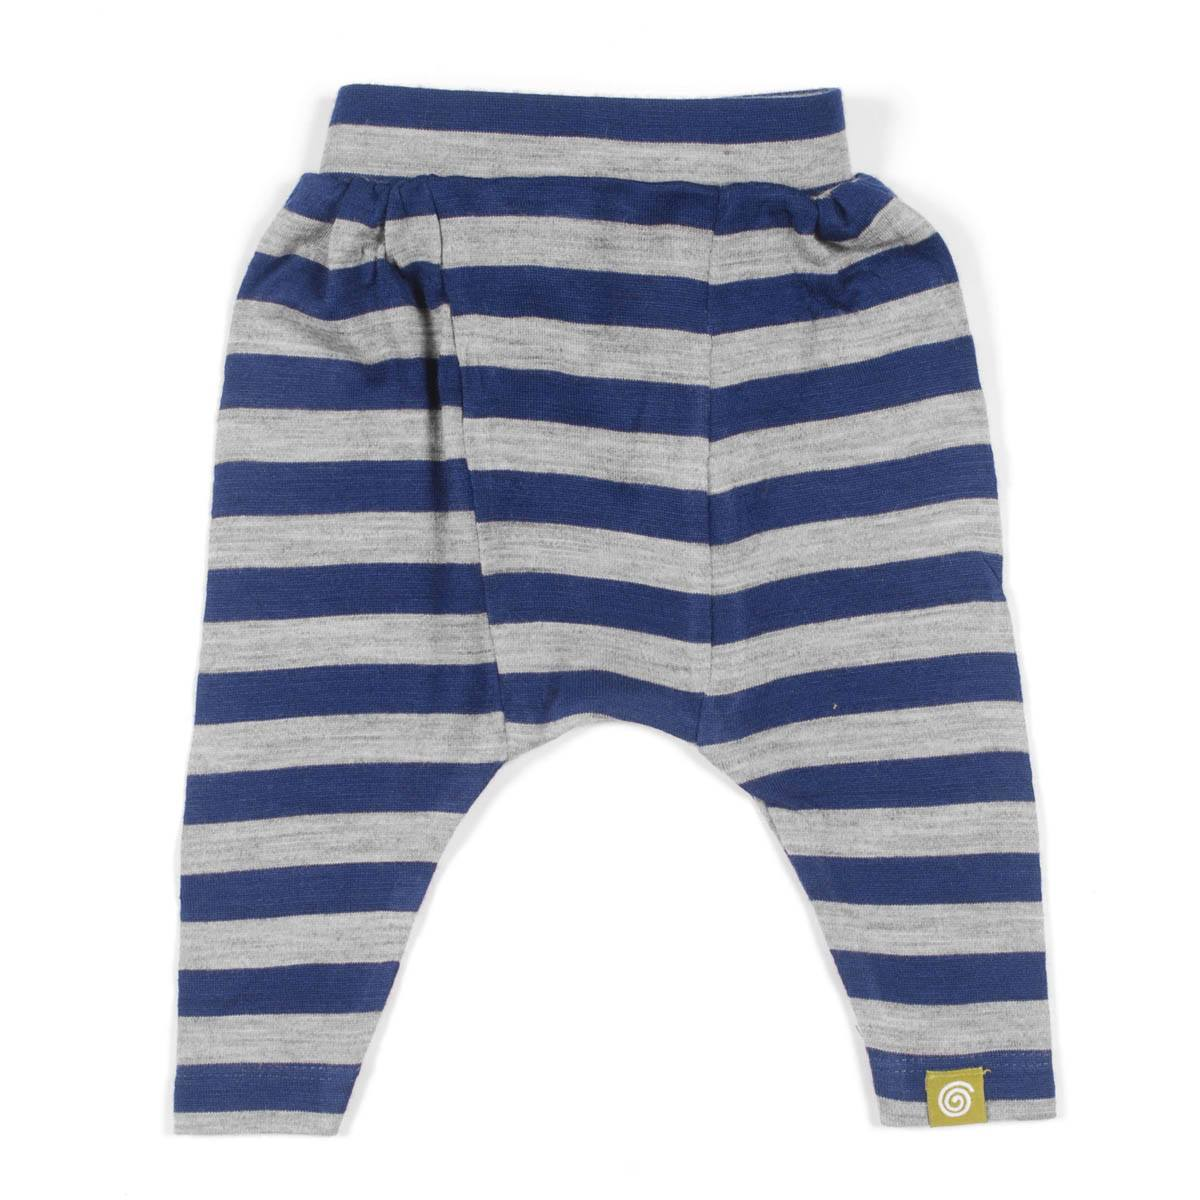 2b85892bf85473 trousers-leggings-nui-organics-merino-balloon-pants -navy-silver-stripe-1.jpeg?v=1539813391